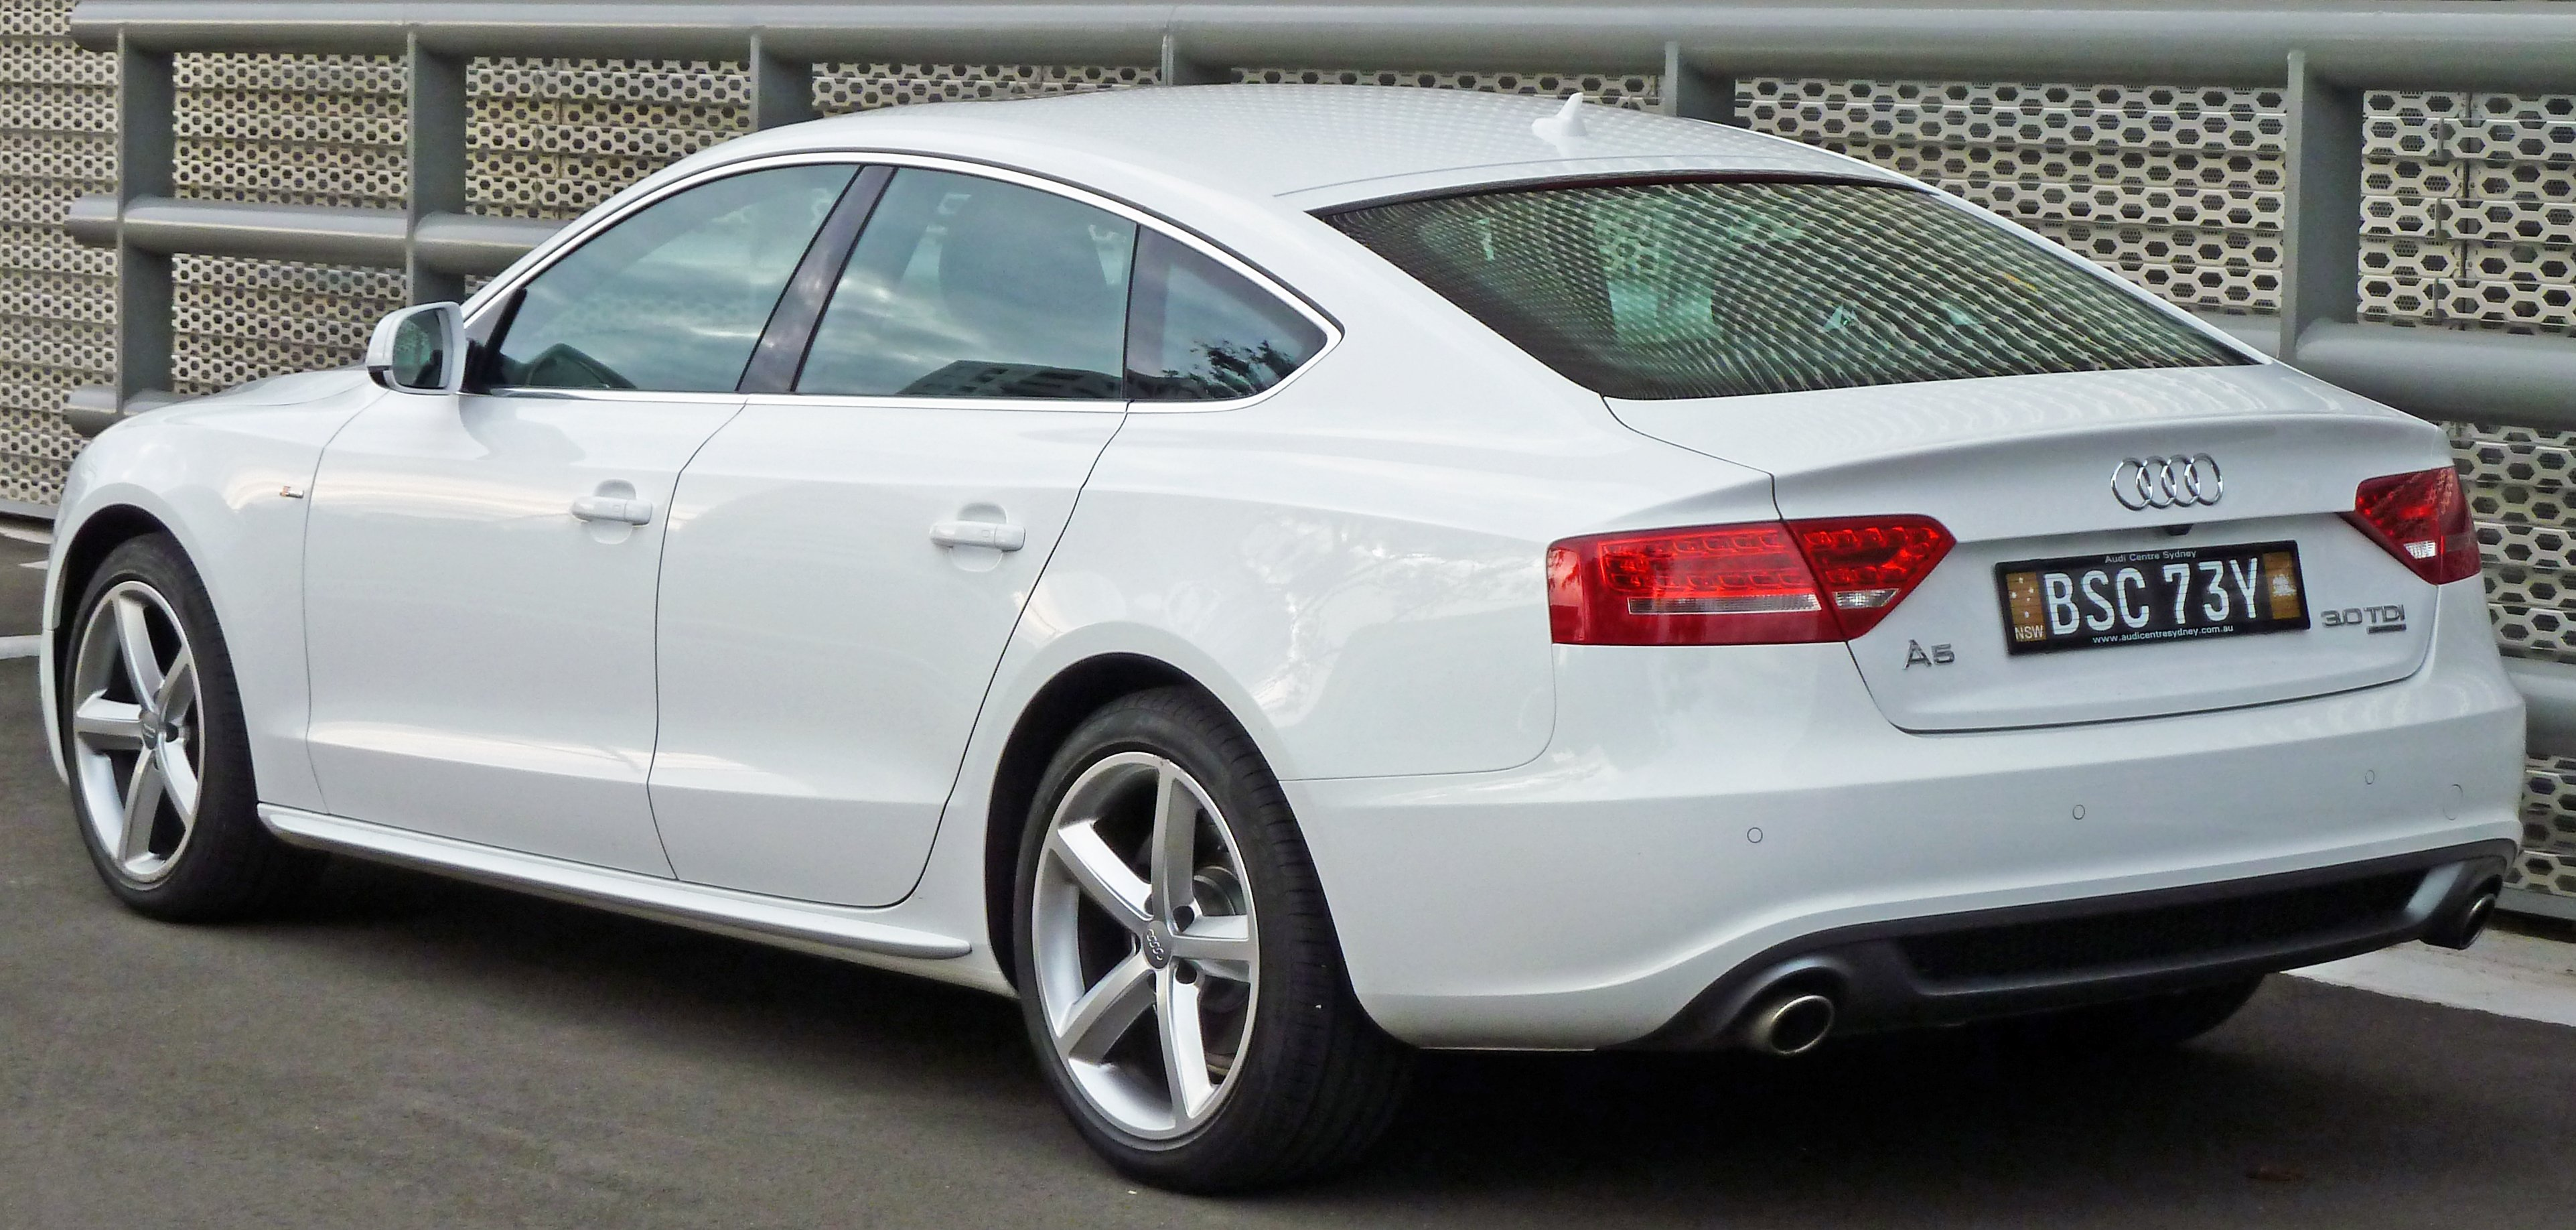 Pictures of audi a5